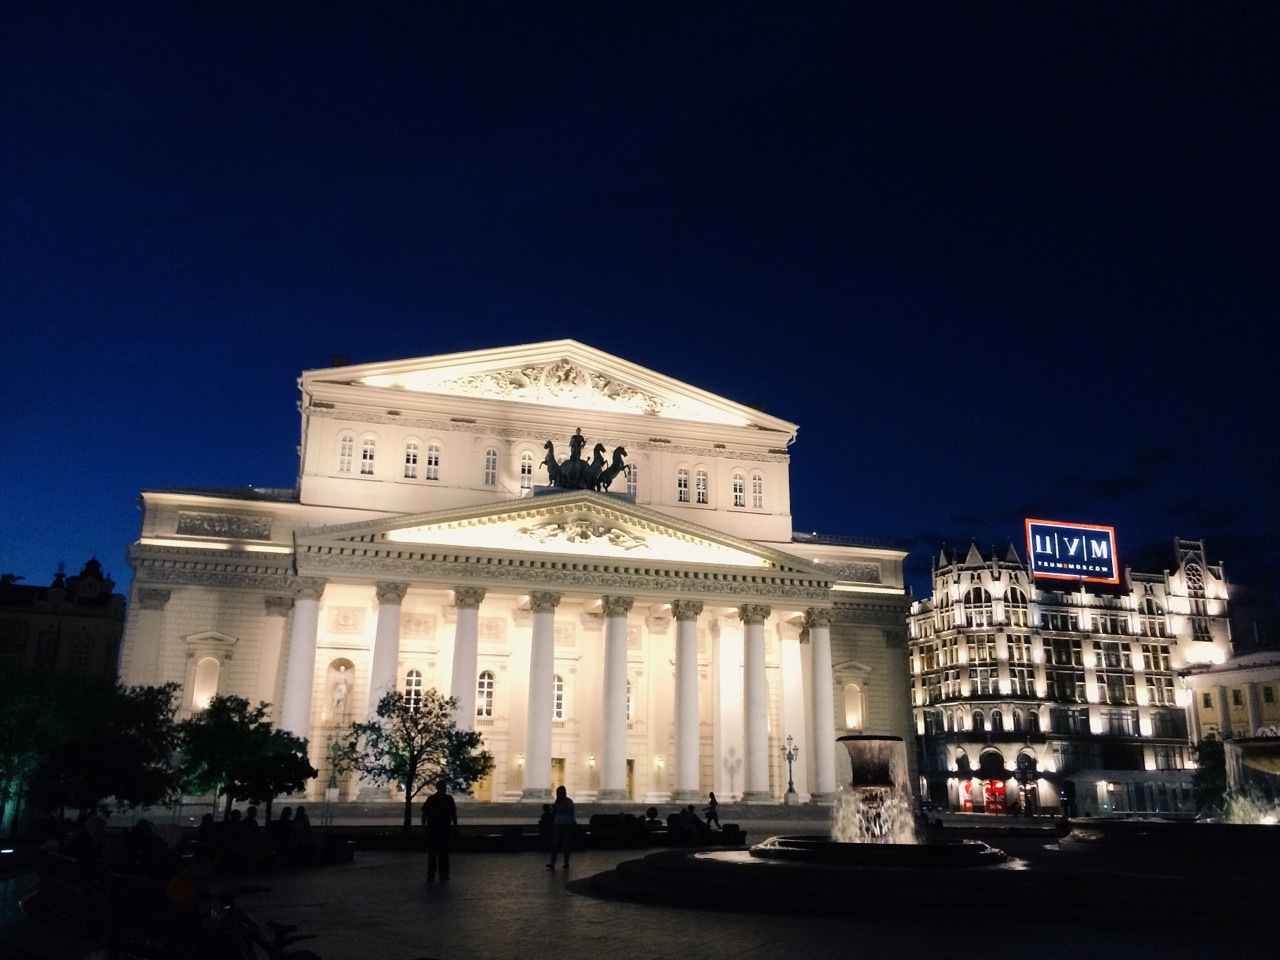 Bolshoi Theatre, Moscow at Night